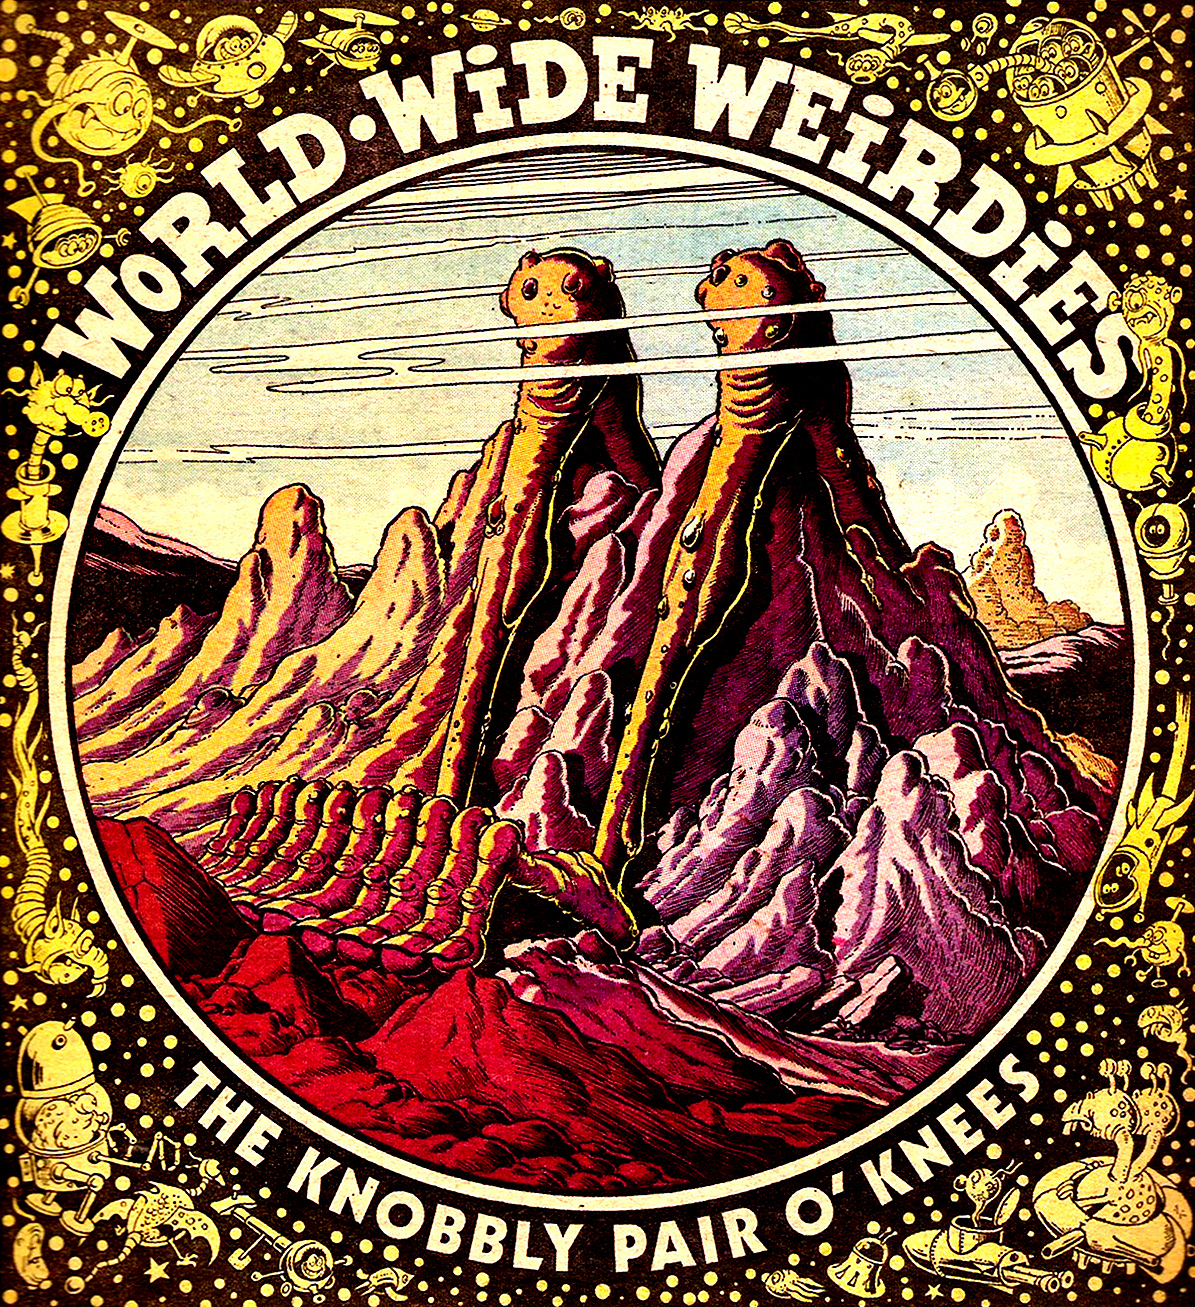 Ken Reid - World Wide Weirdies 83